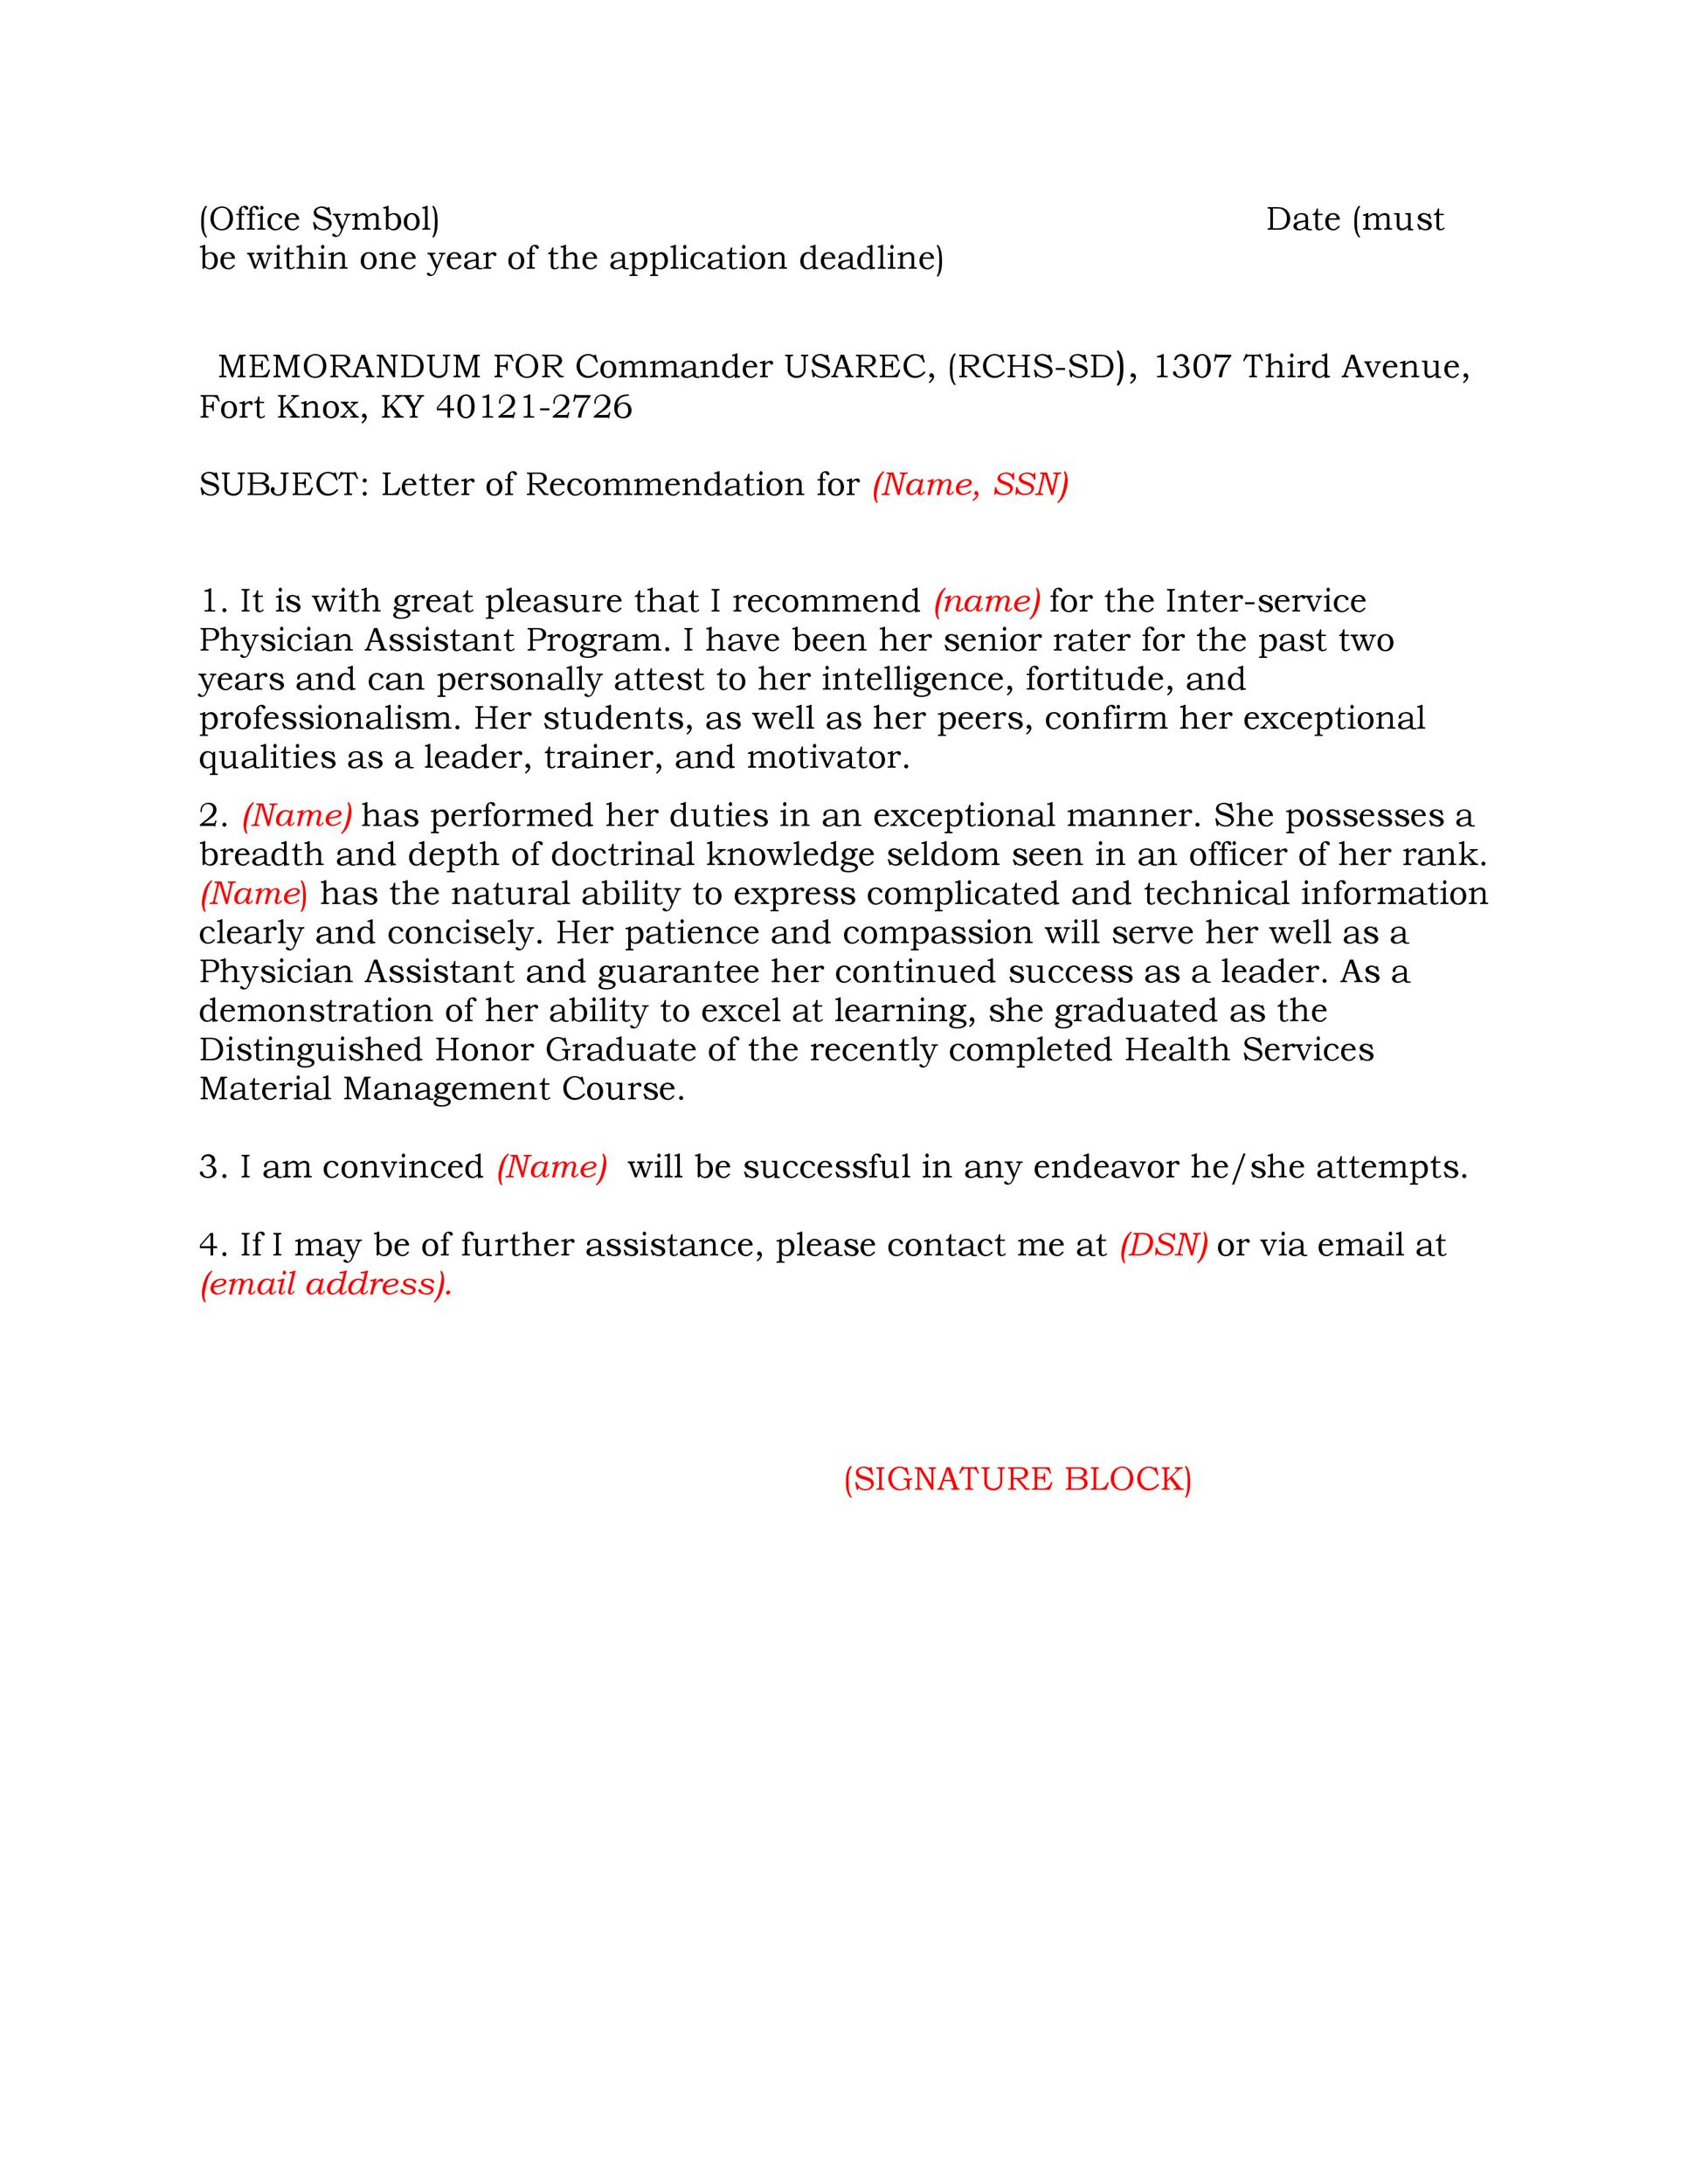 Sample Letter Of Recommendation For Physician Letter Of